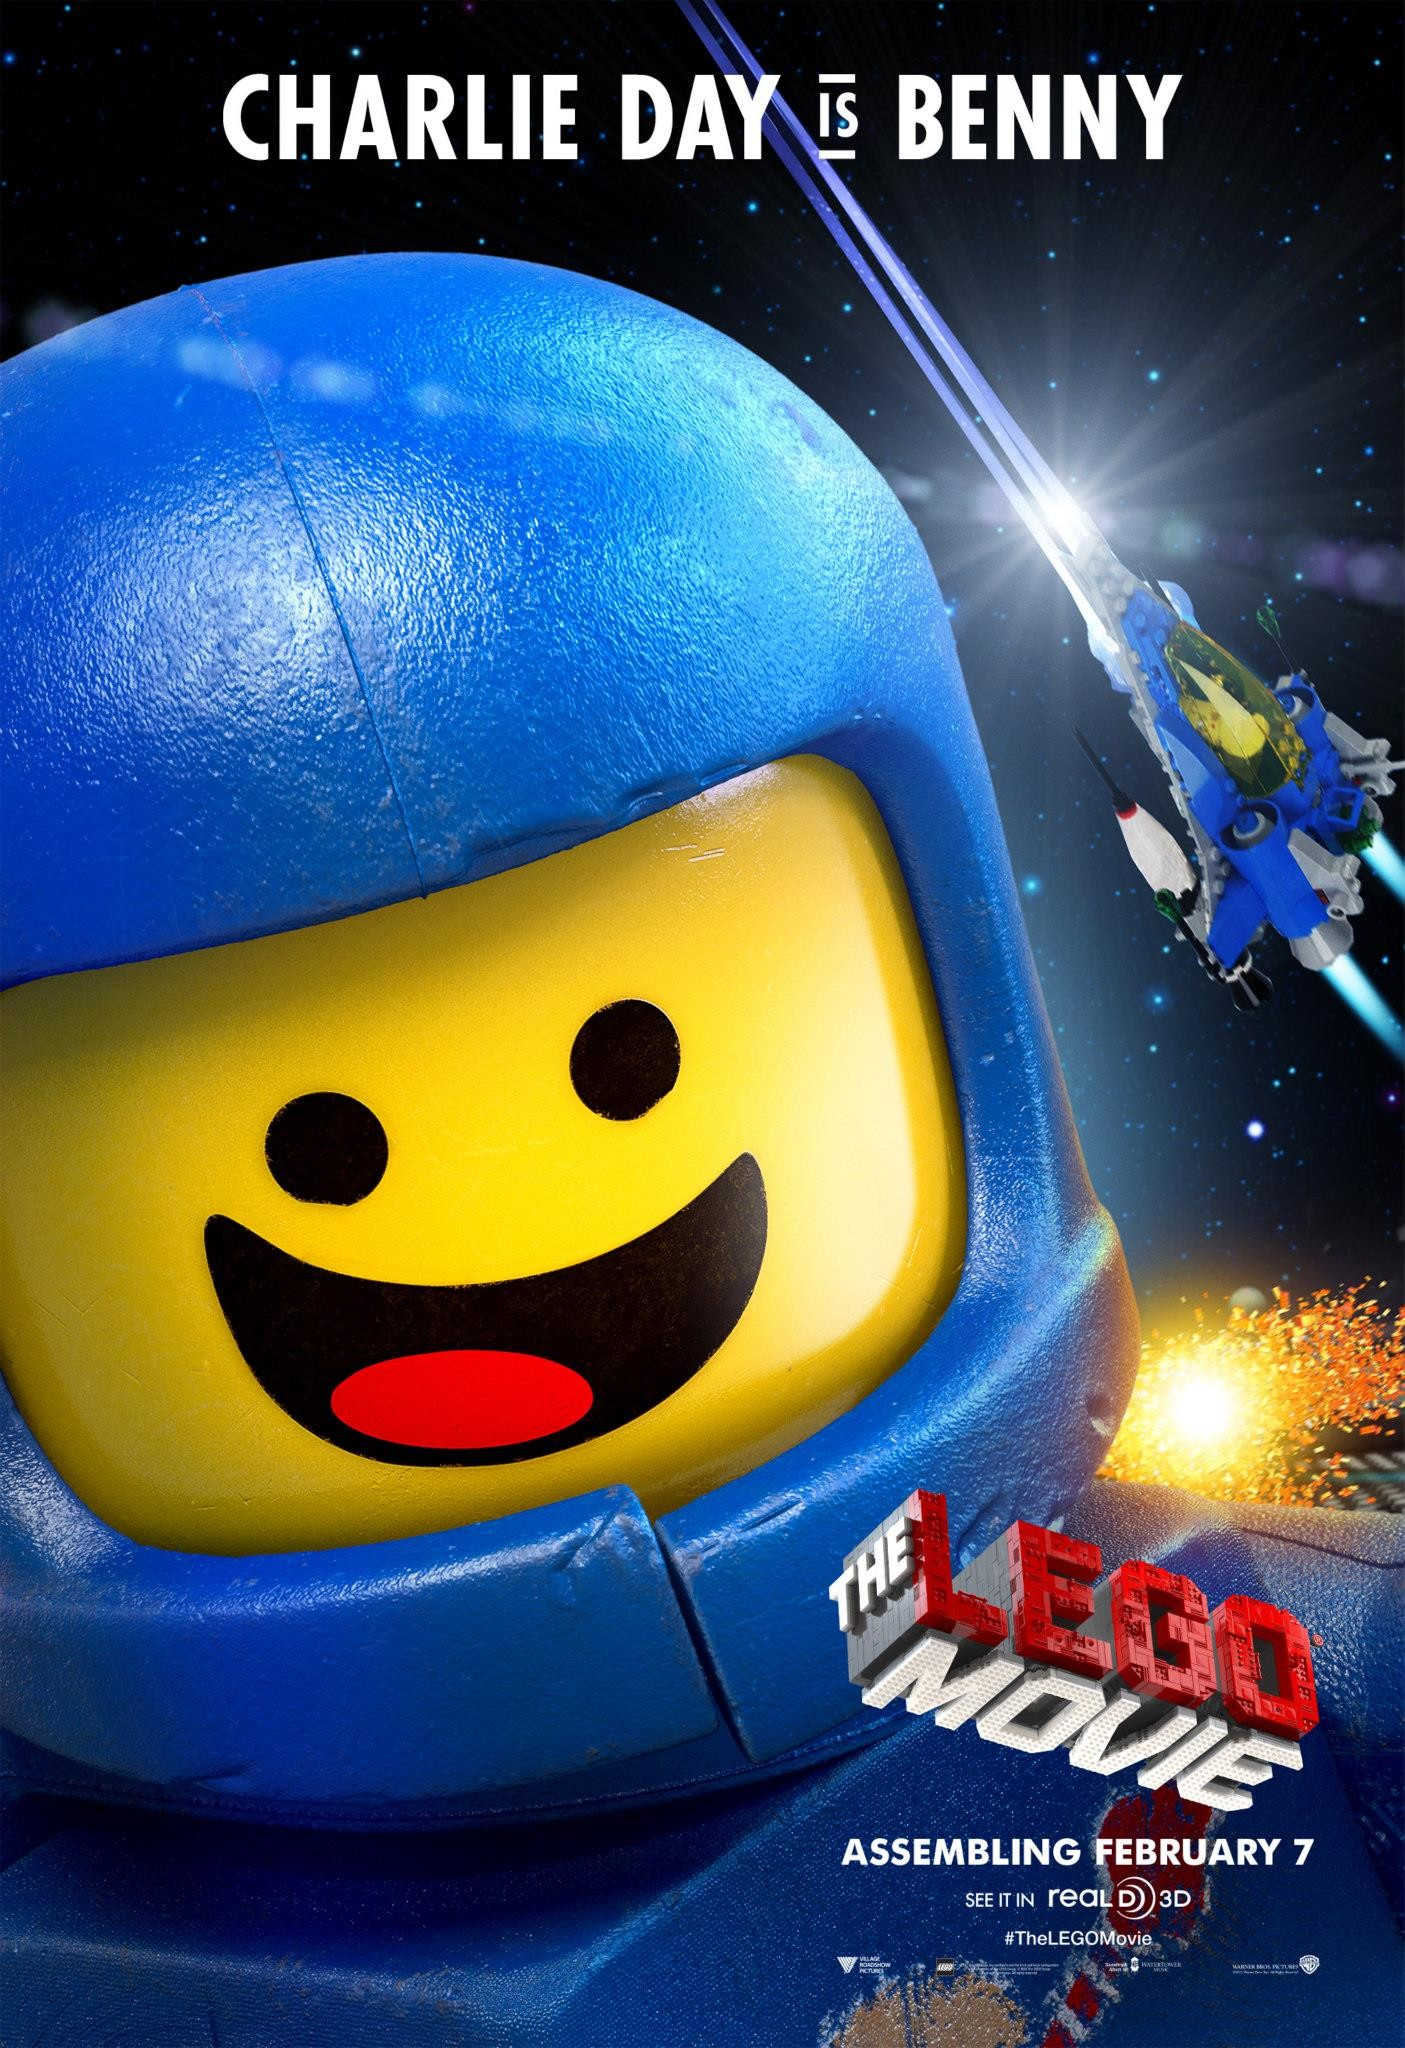 The Lego Movie-Official Poster Banner PROMO POSTER XLG-12NOVEMBRO2013-02